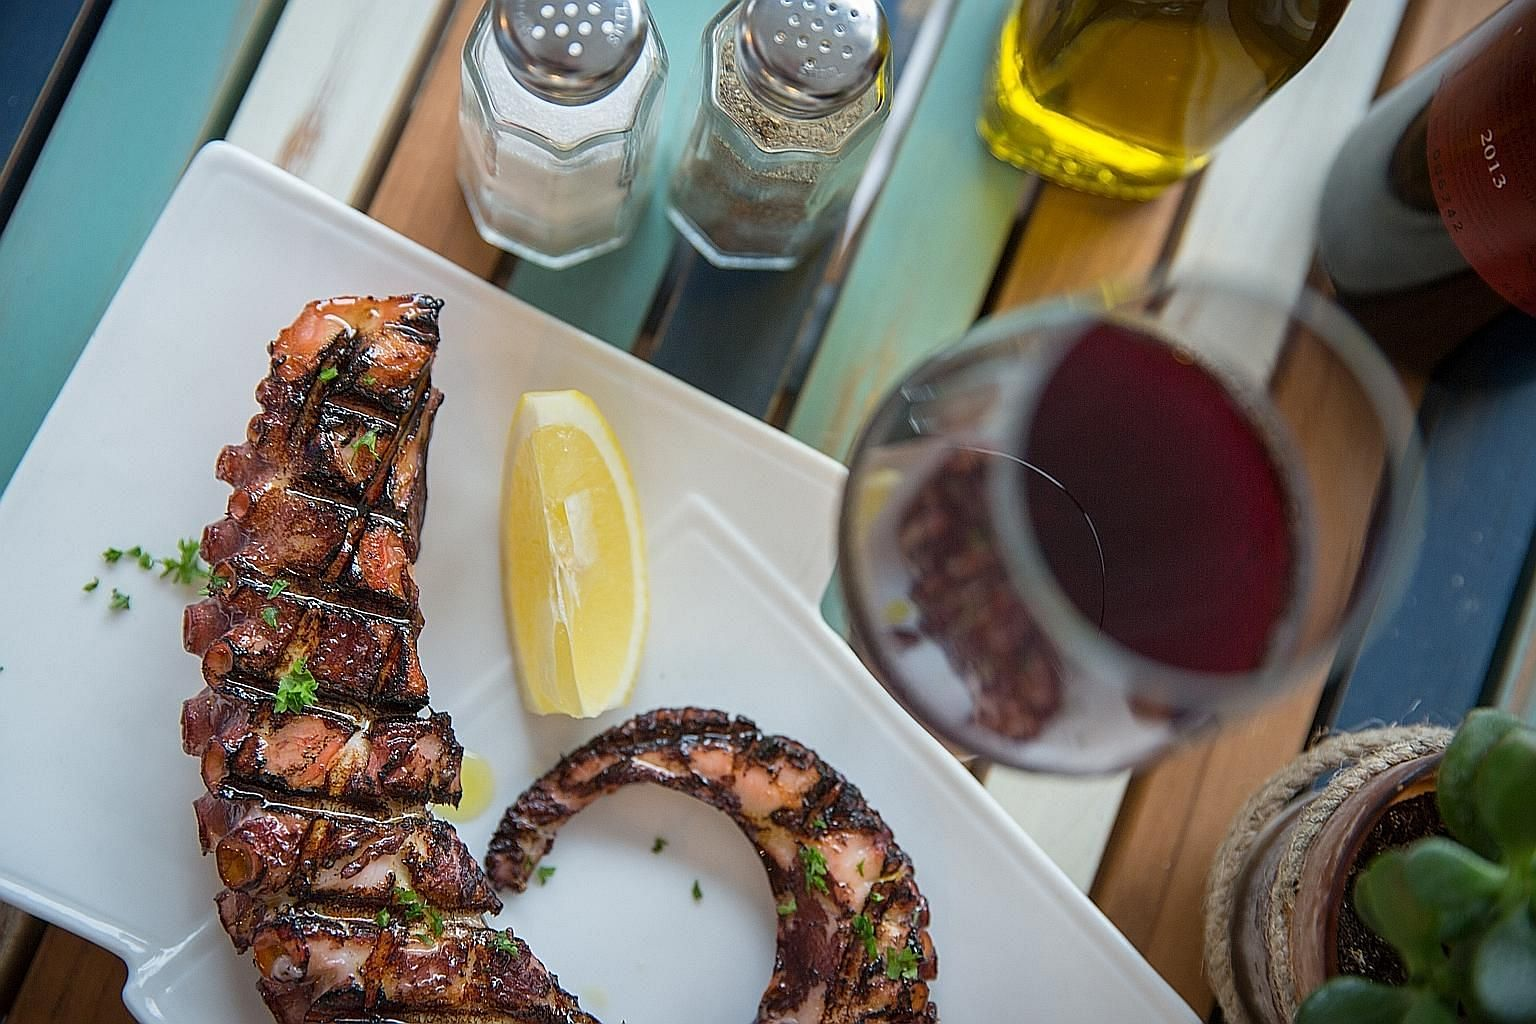 The grilled octopus (above) is tender with an appealing aroma of smoke and oregano and the Greek yogurt topped with honey and walnuts (left) is delicious.